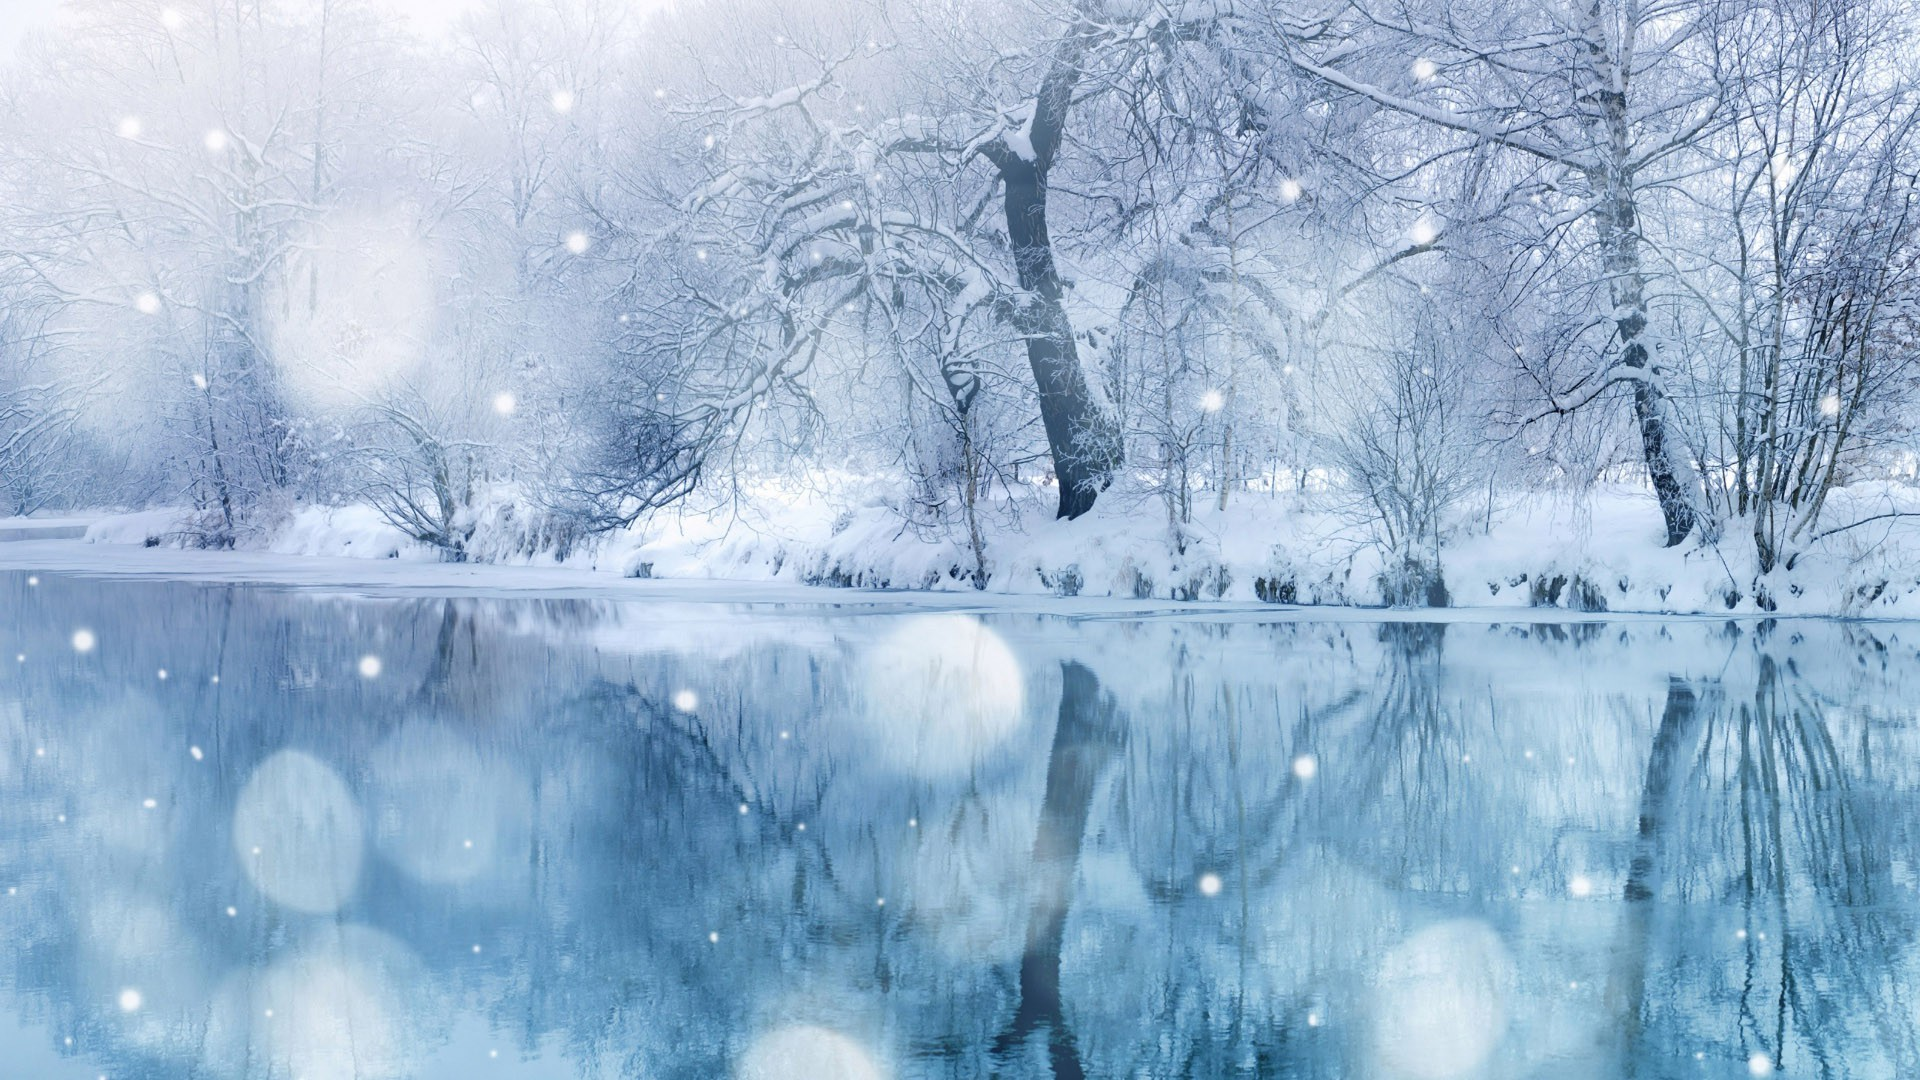 Falling Snow Live Wallpaper For Iphone Snow Falling Wallpapers